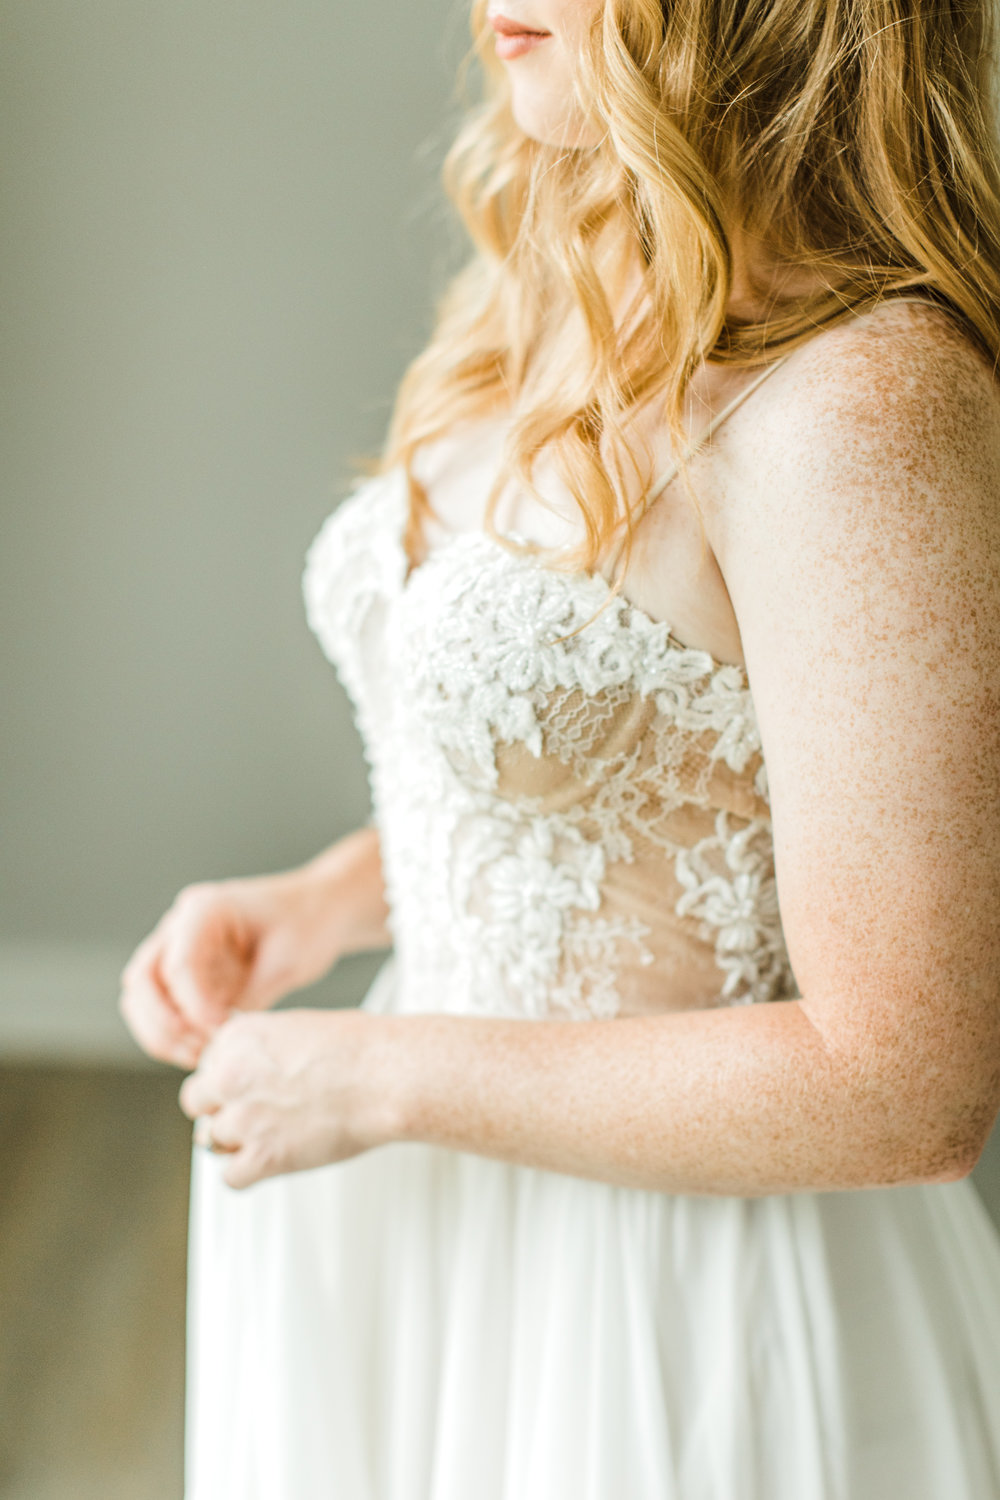 Dress from LVD Bridal, photography by Sarah Sidwell Photography, styling by jennifer of {feather + oak}.